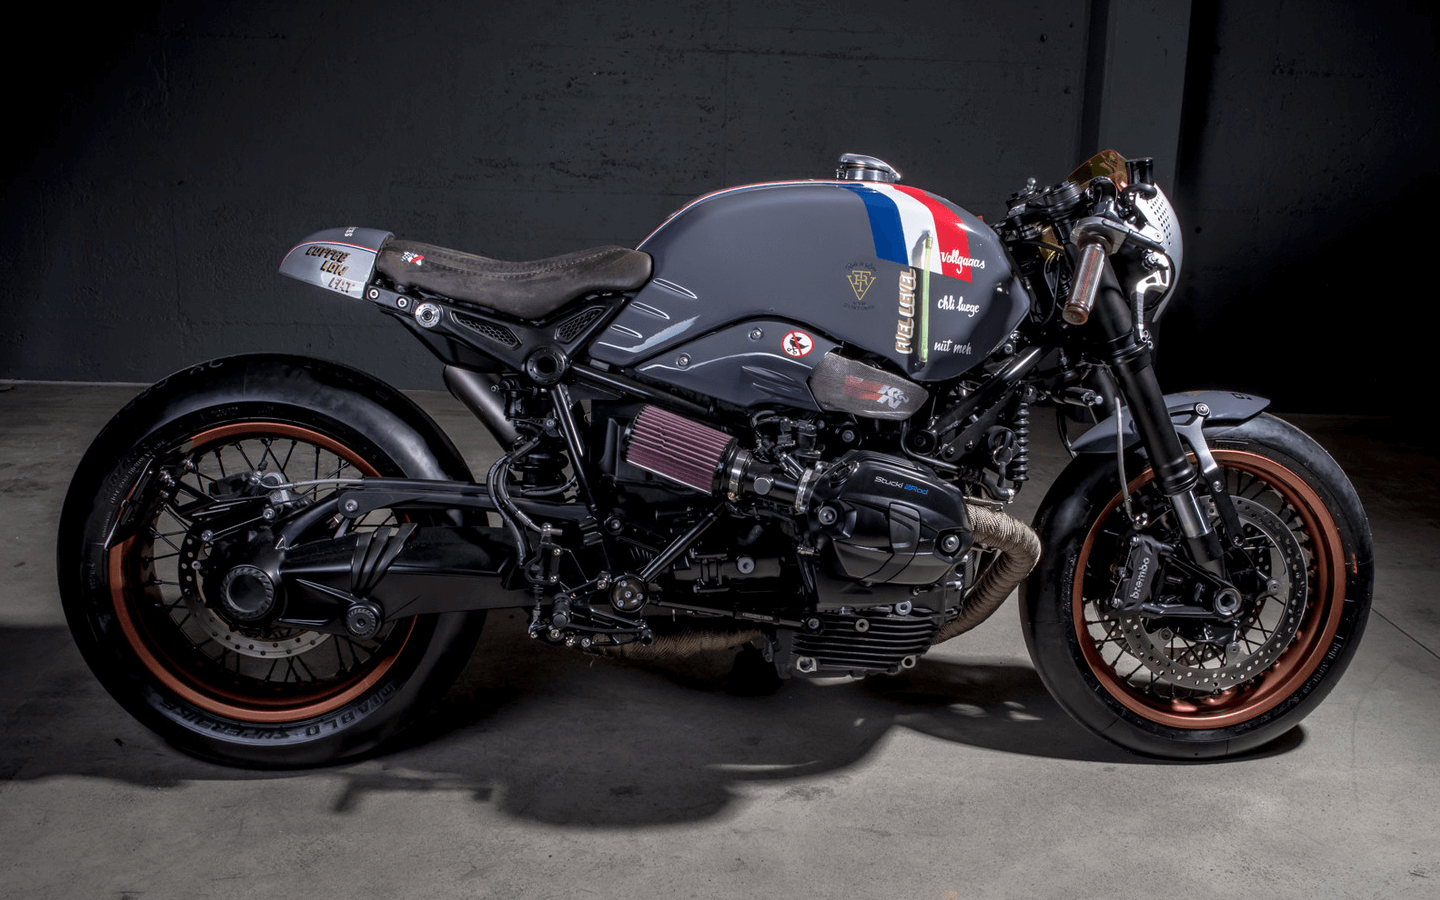 bmw r ninet custom by vtr customs motorr der bmw motorr der und umbau. Black Bedroom Furniture Sets. Home Design Ideas